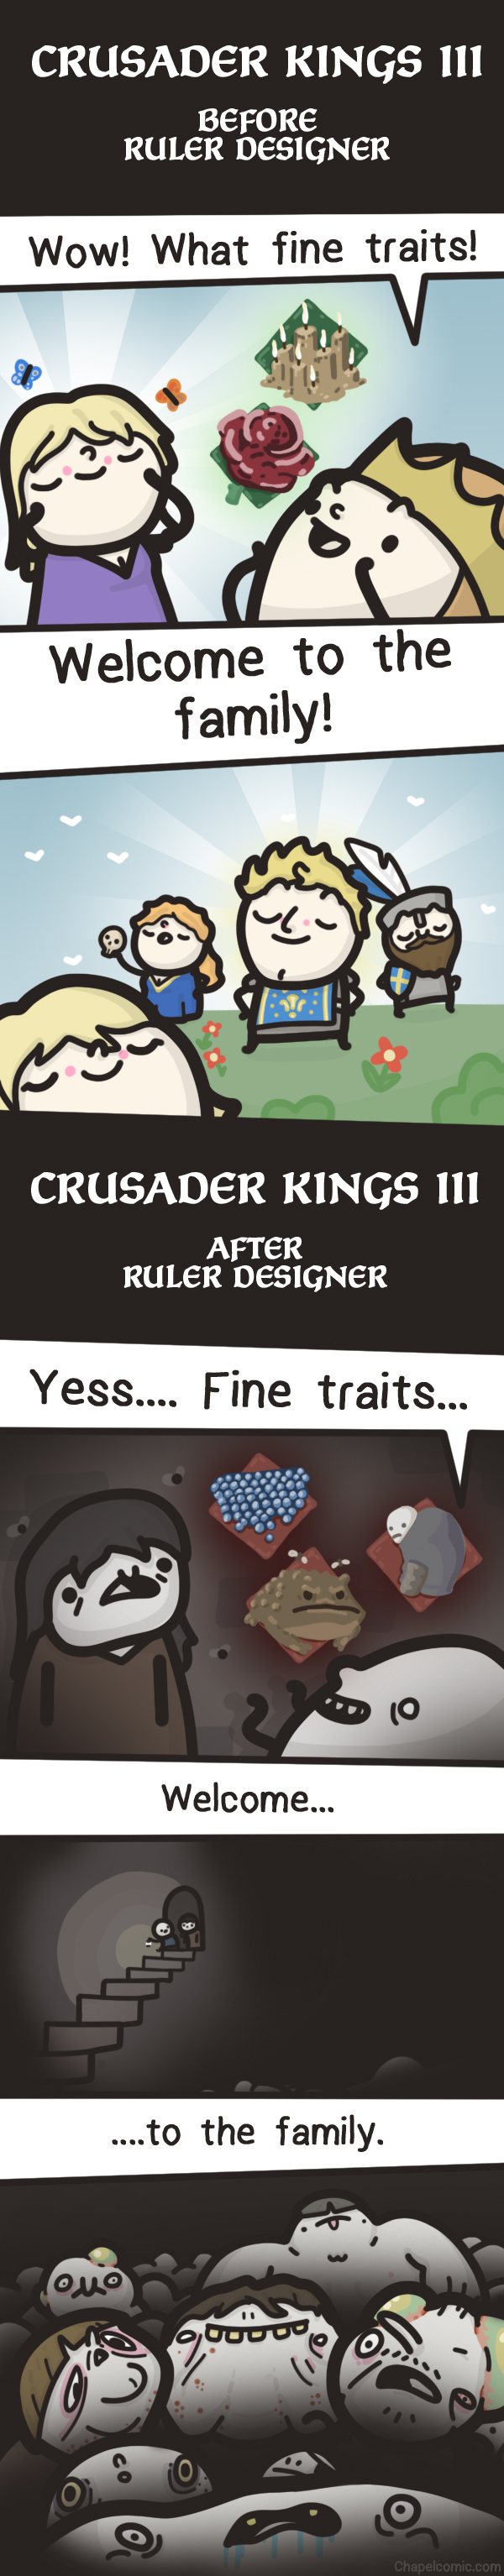 Crusader Kings 3 - Monster factory